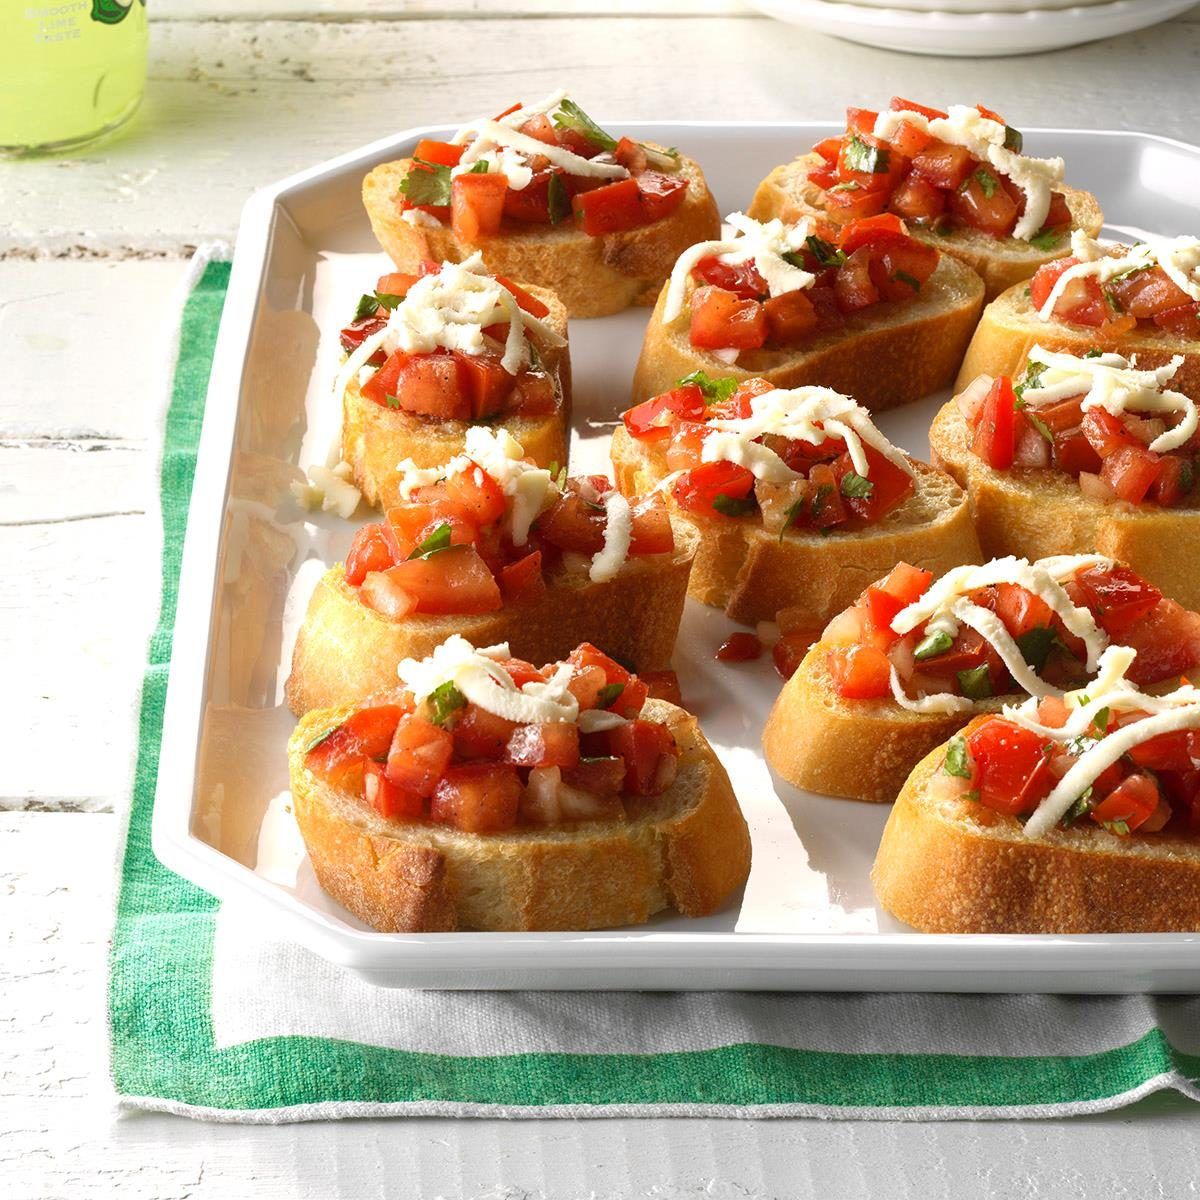 40 Easy Potluck Recipes For Your Graduation Party: Cilantro Tomato Bruschetta Recipe